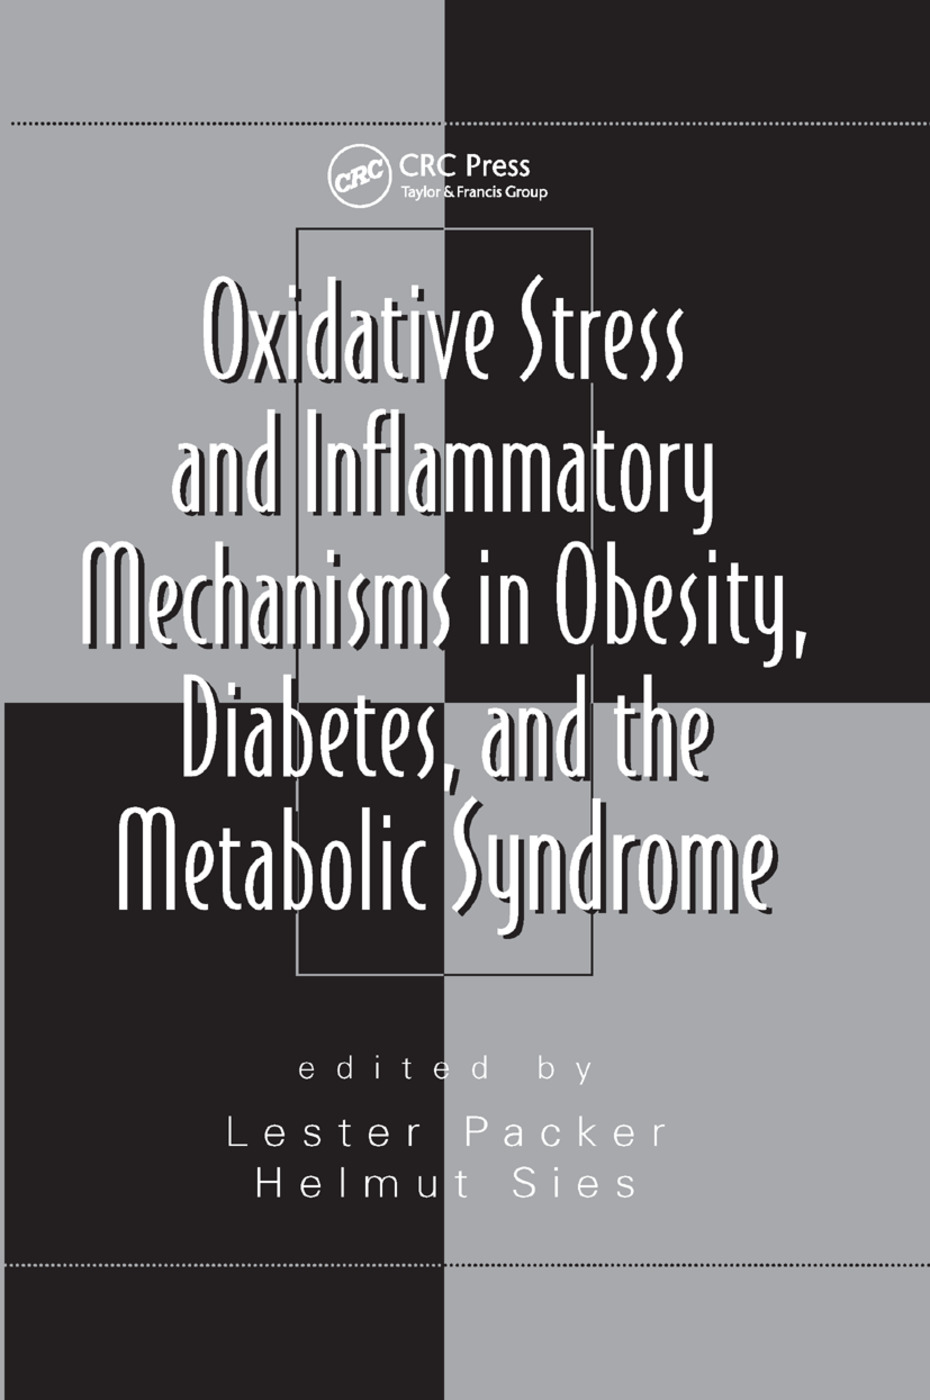 Oxidative Stress and Inflammatory Mechanisms in Obesity, Diabetes, and the Metabolic Syndrome: 1st Edition (Paperback) book cover